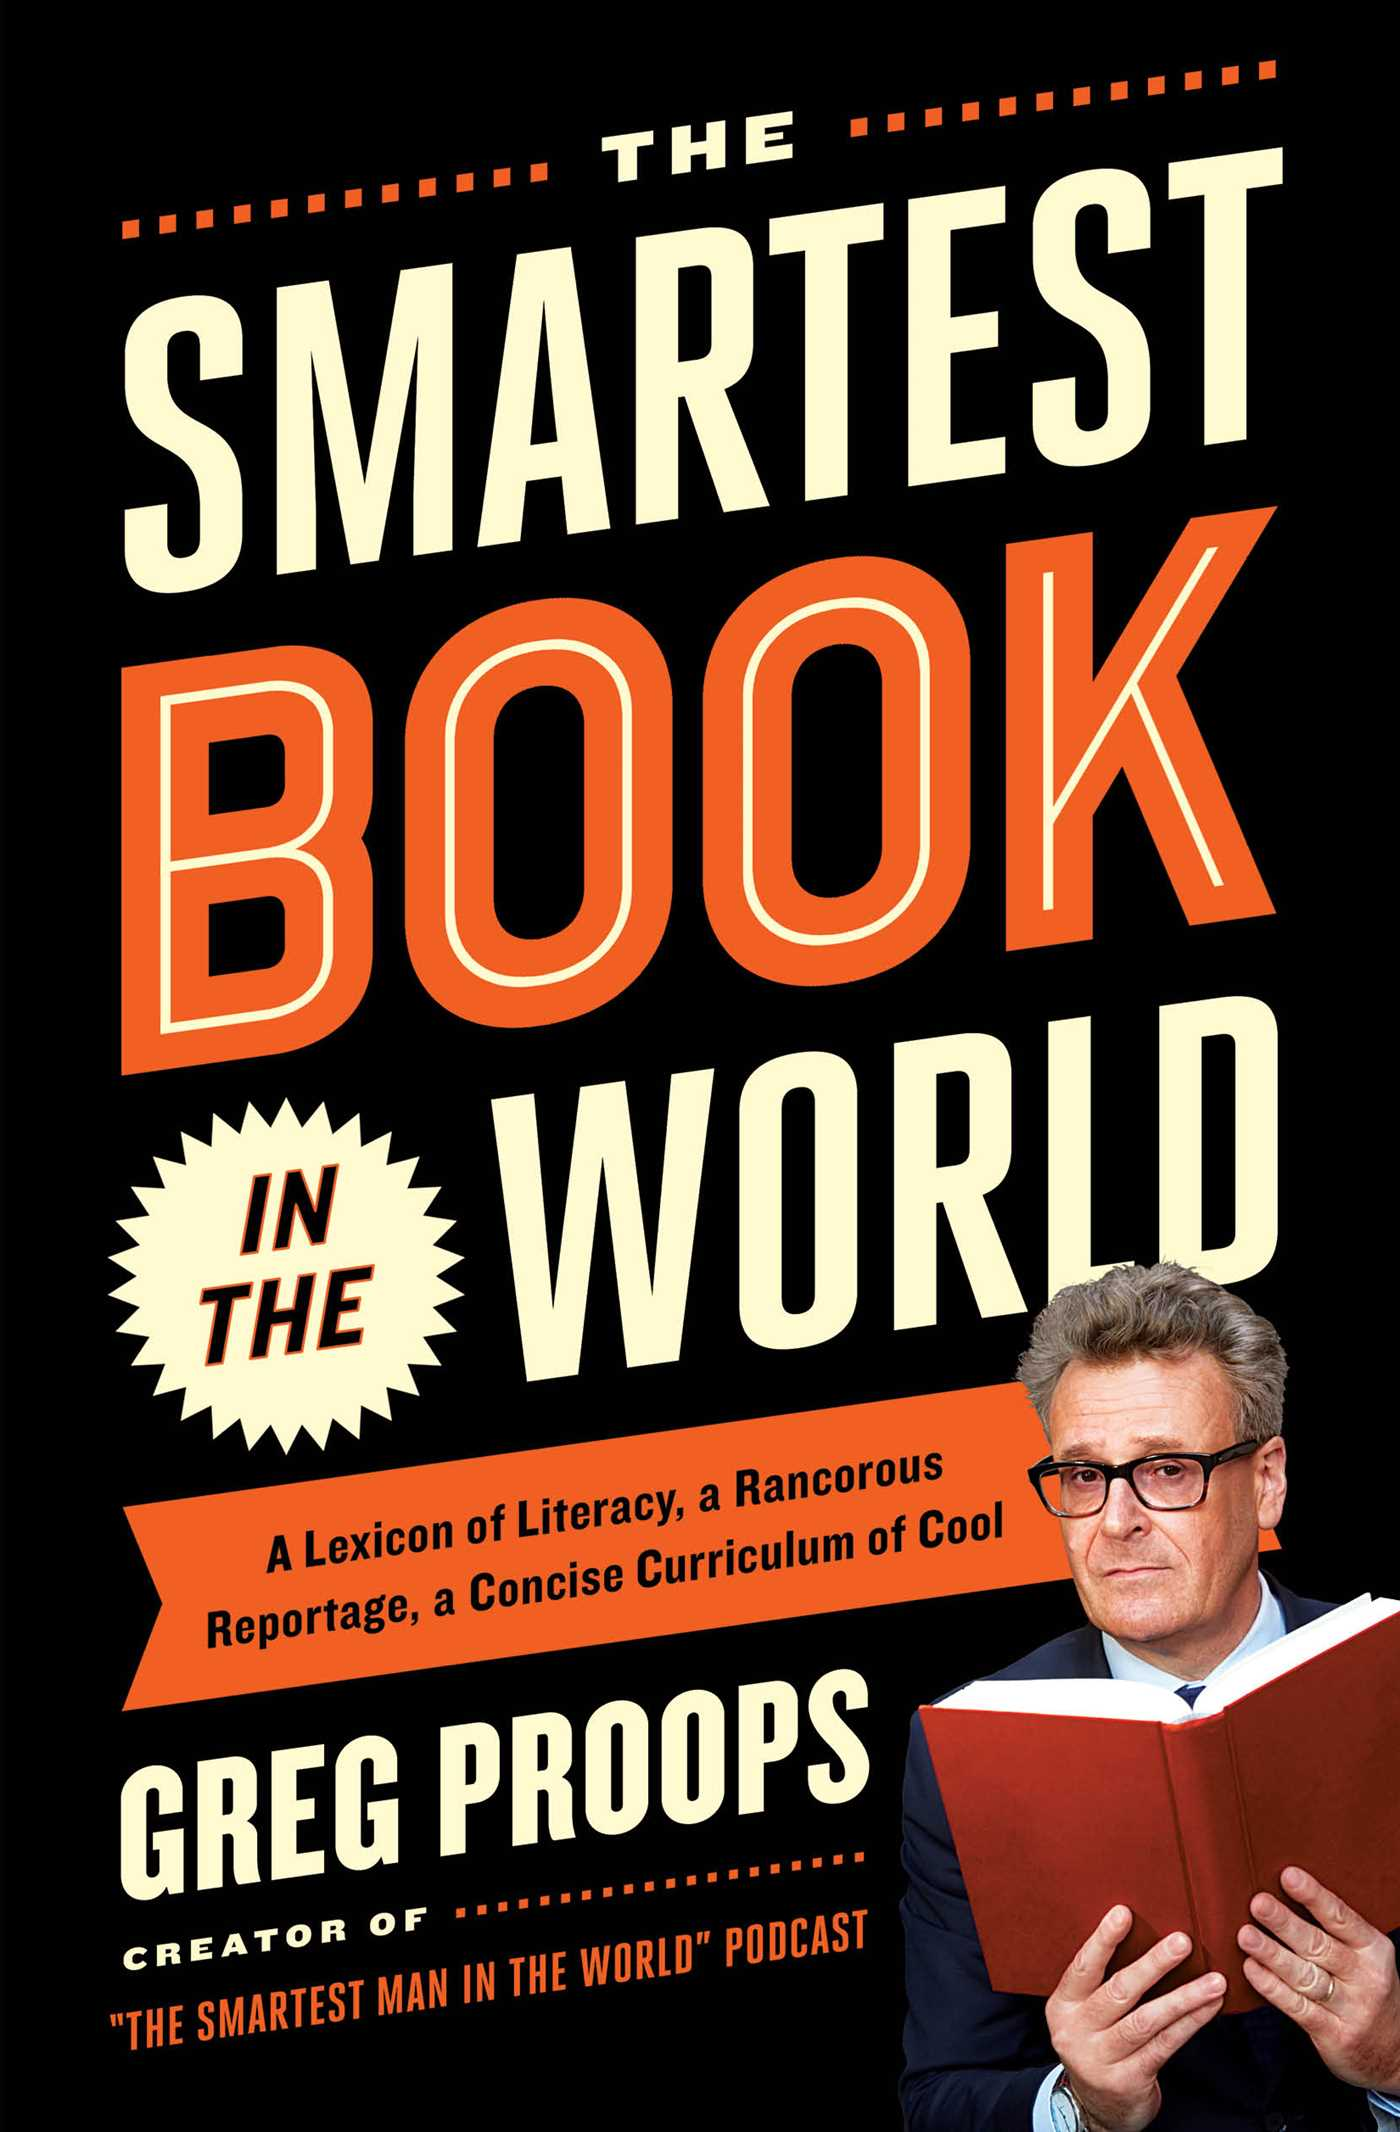 The smartest book in the world 9781476747057 hr